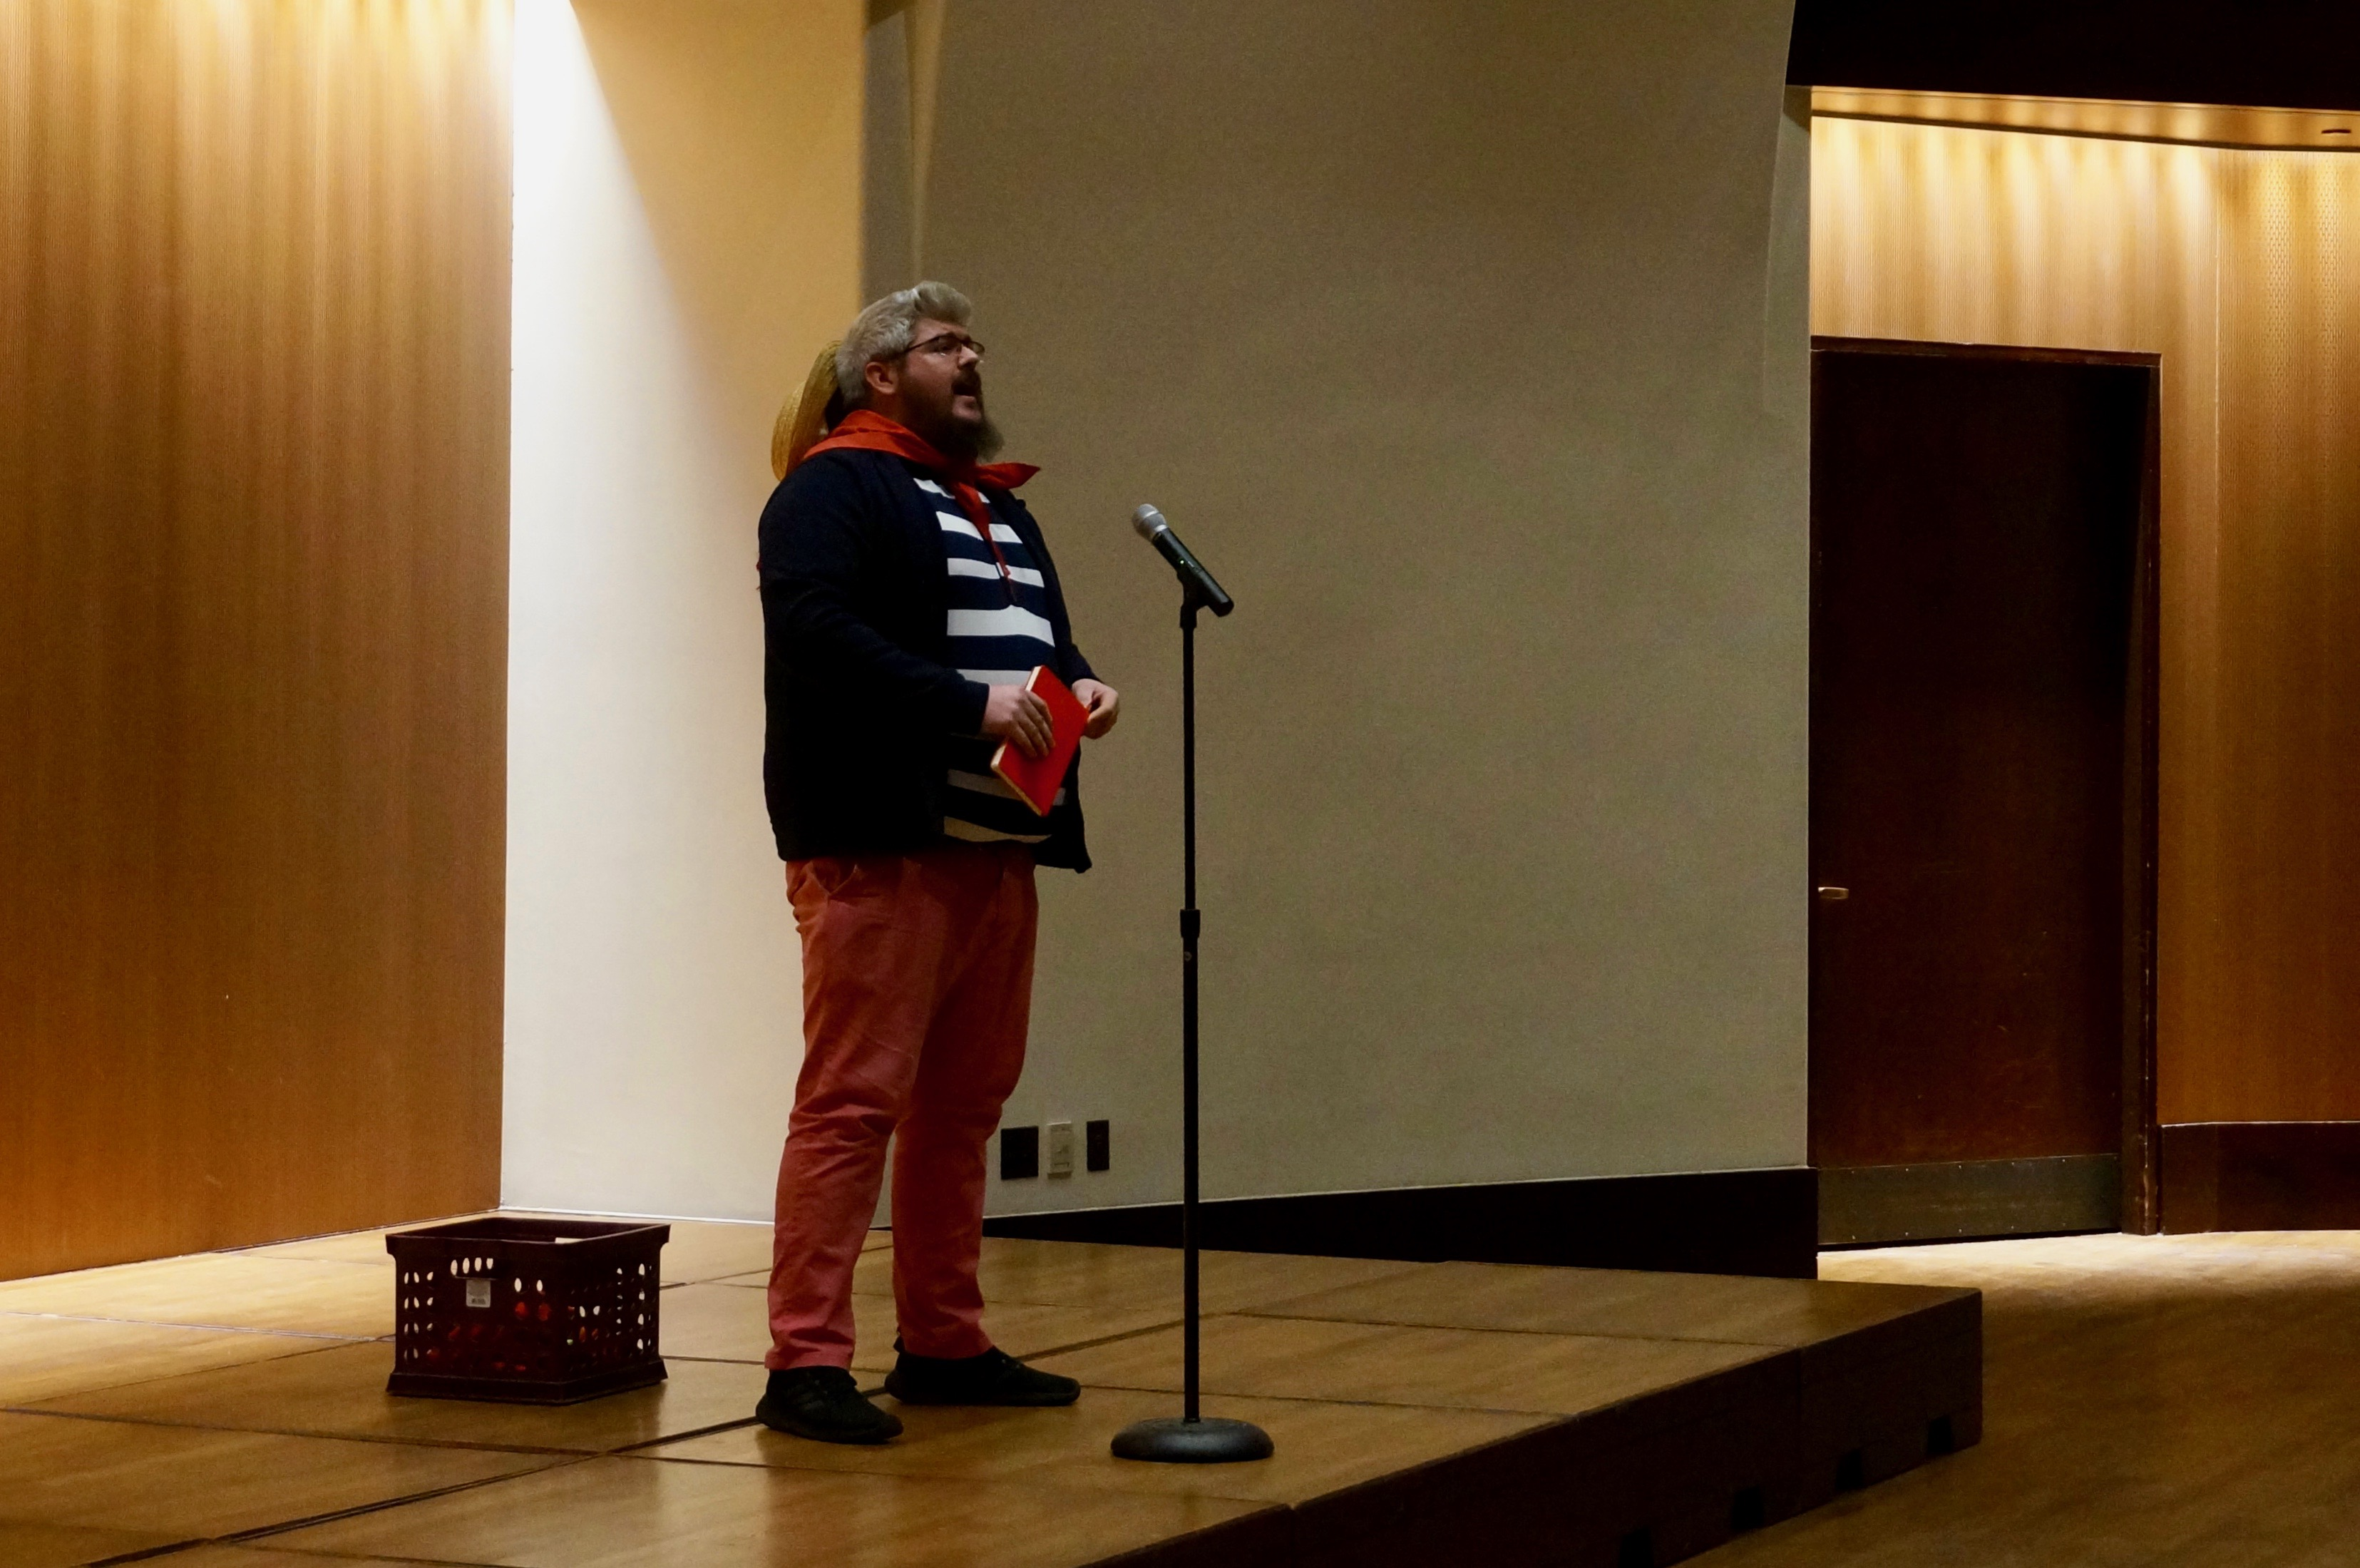 Derek Gould, a teacher at Paramount Brookside, talked about his second job as a singing gondolier at a story slam on teacher pay.